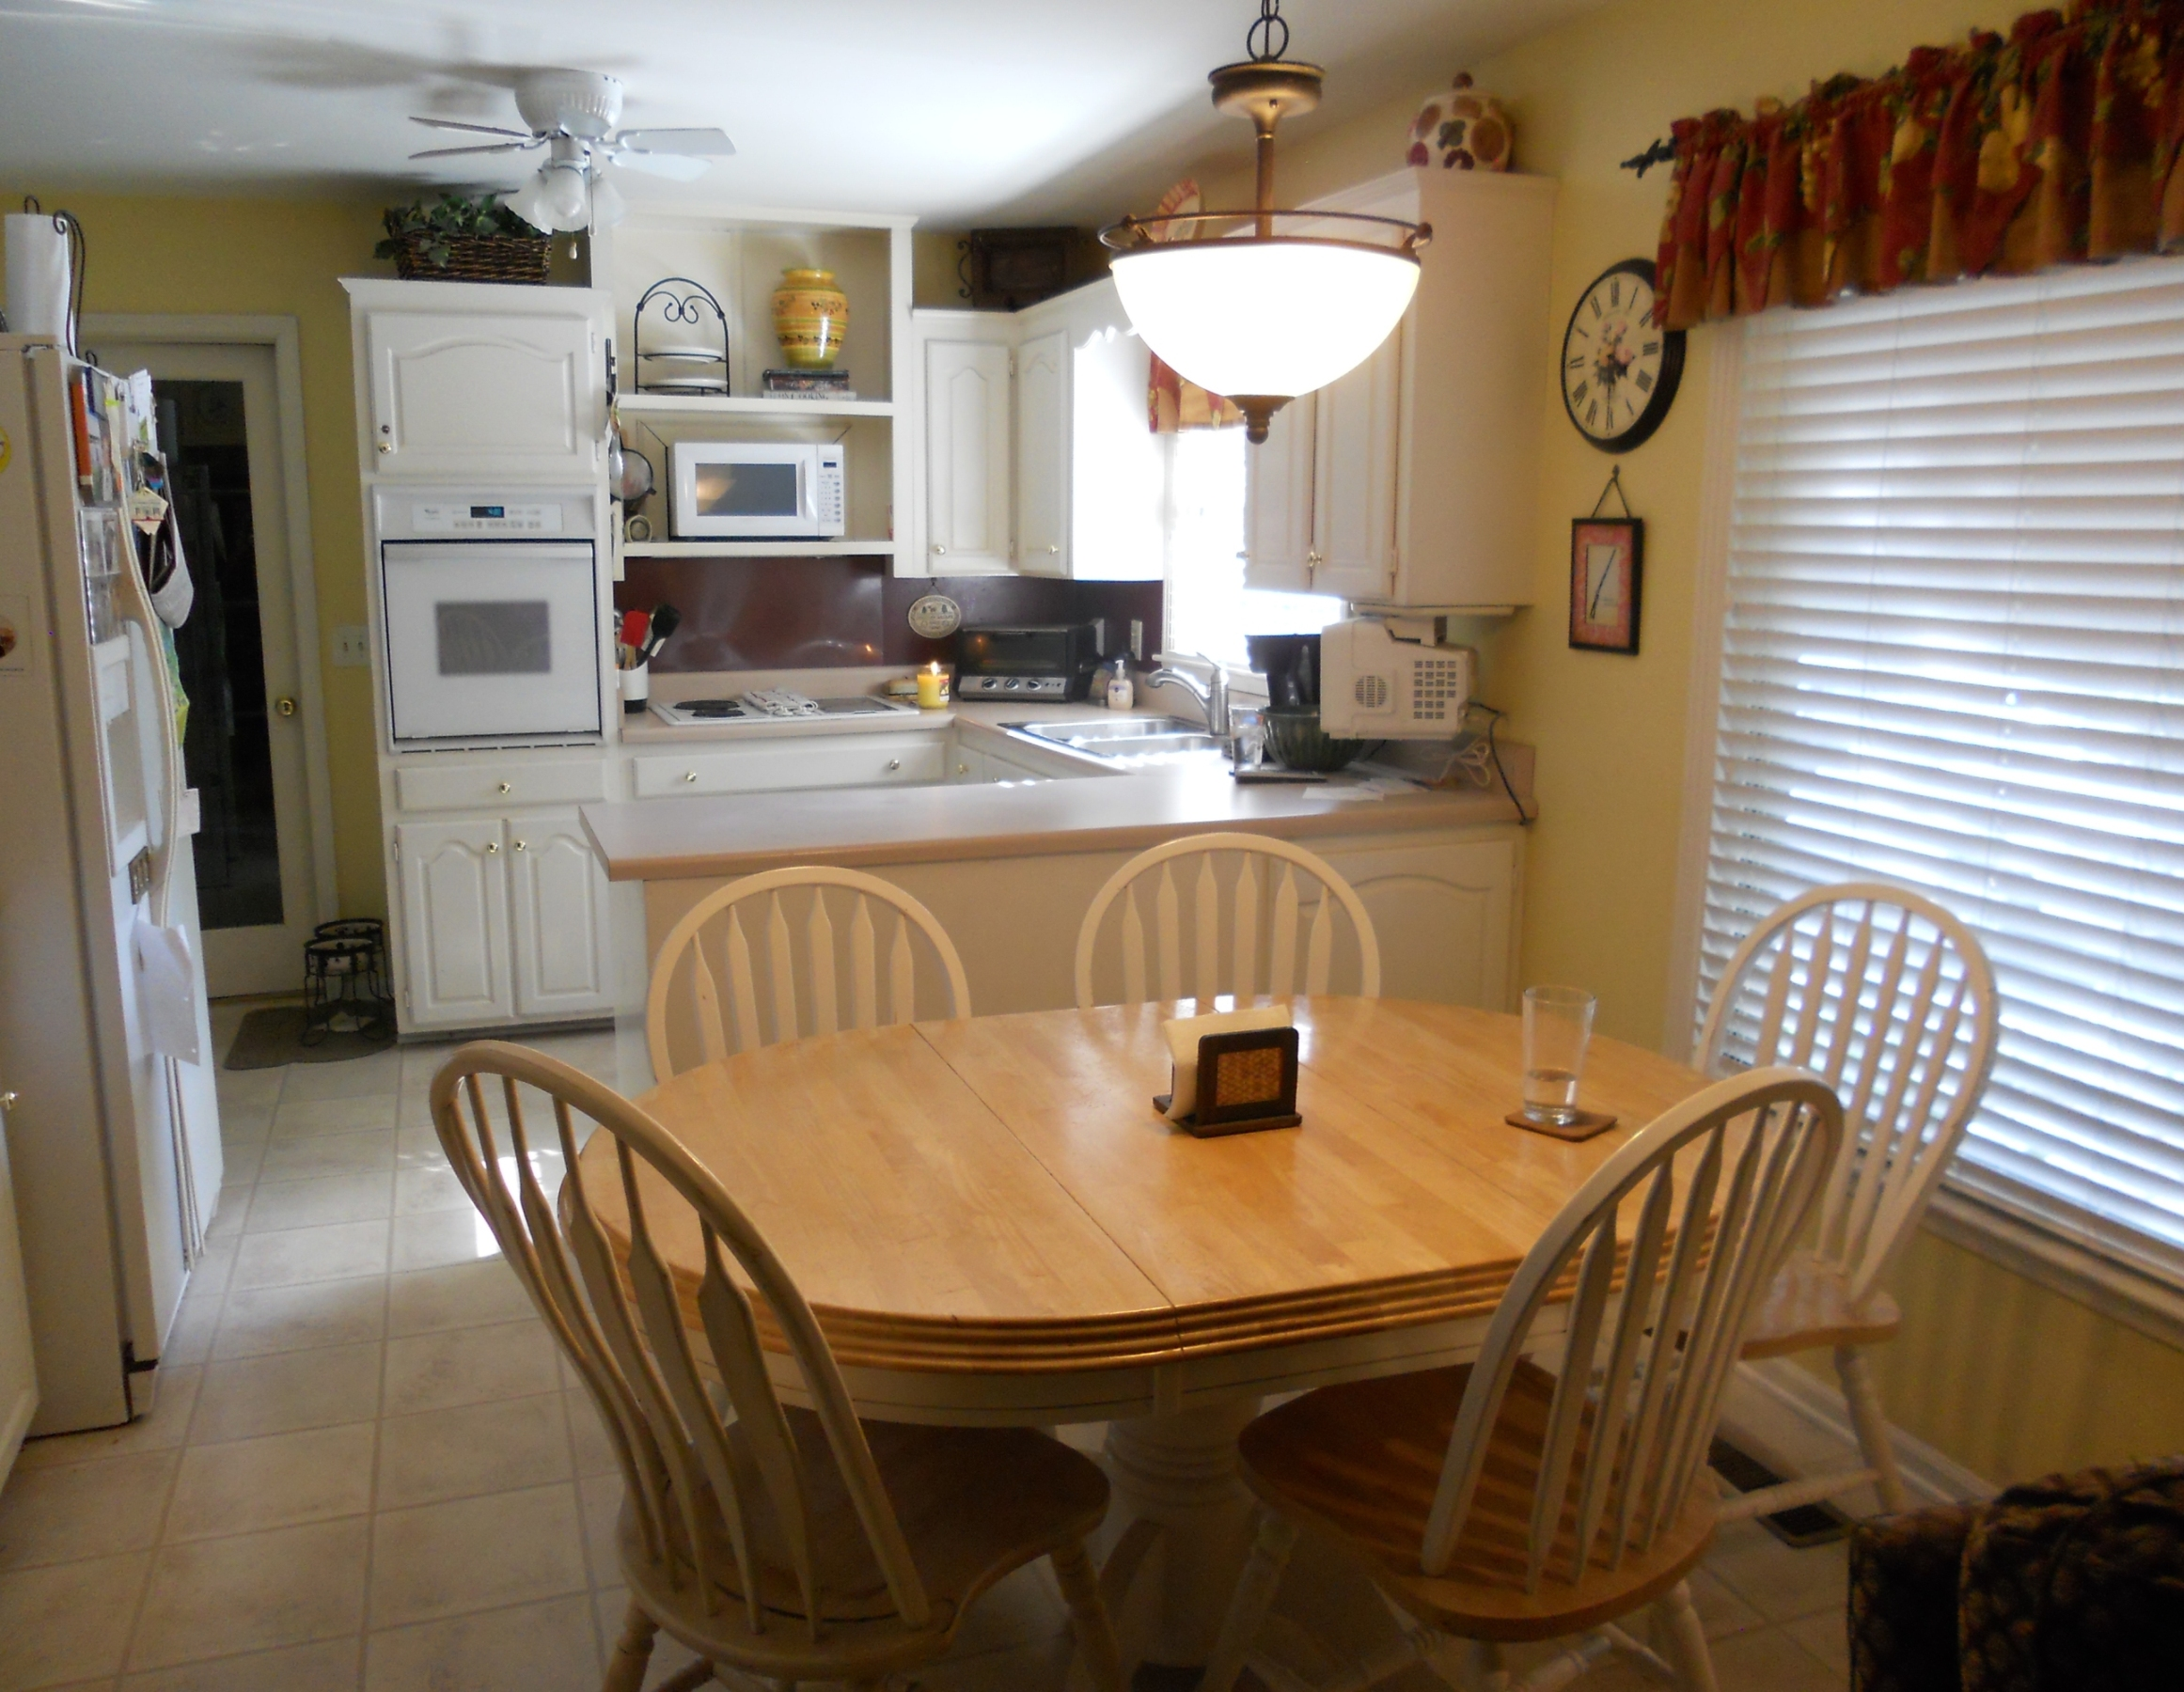 white appliances kitchen bar tables preciousinstants brown painted cabinets with